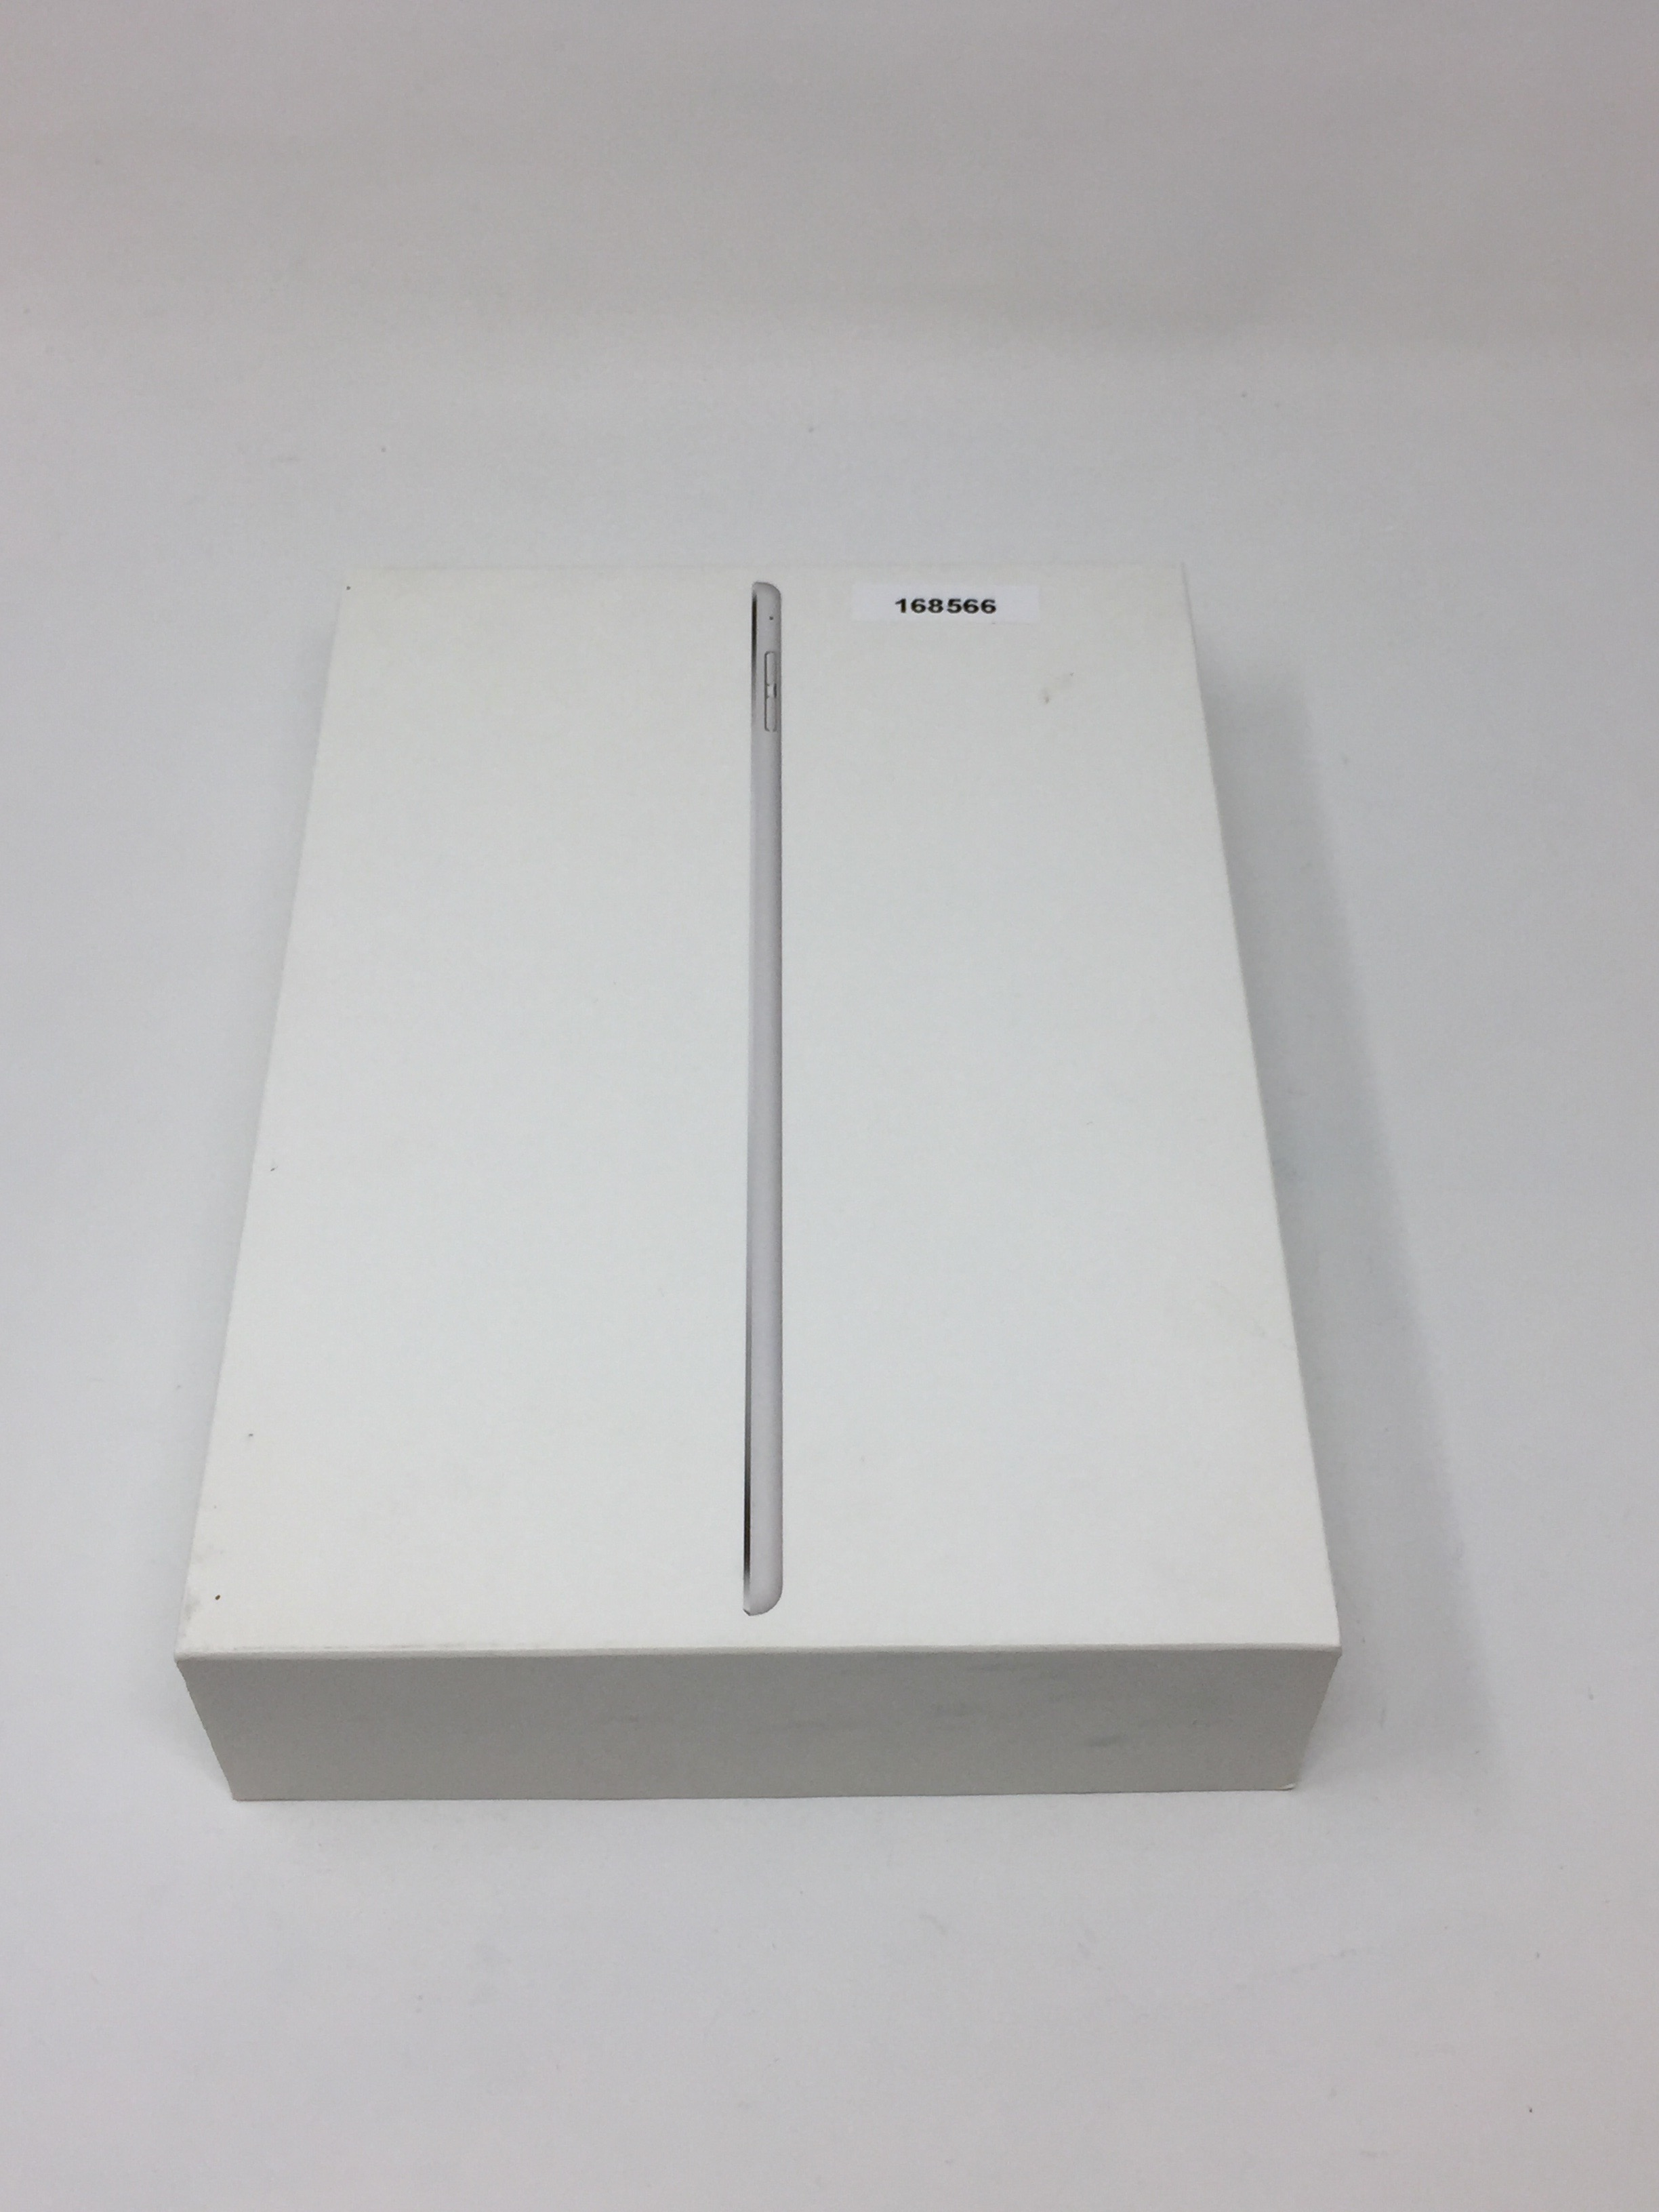 iPad Air 2 WiFi Cellular, 64 GB, Silver, bild 4